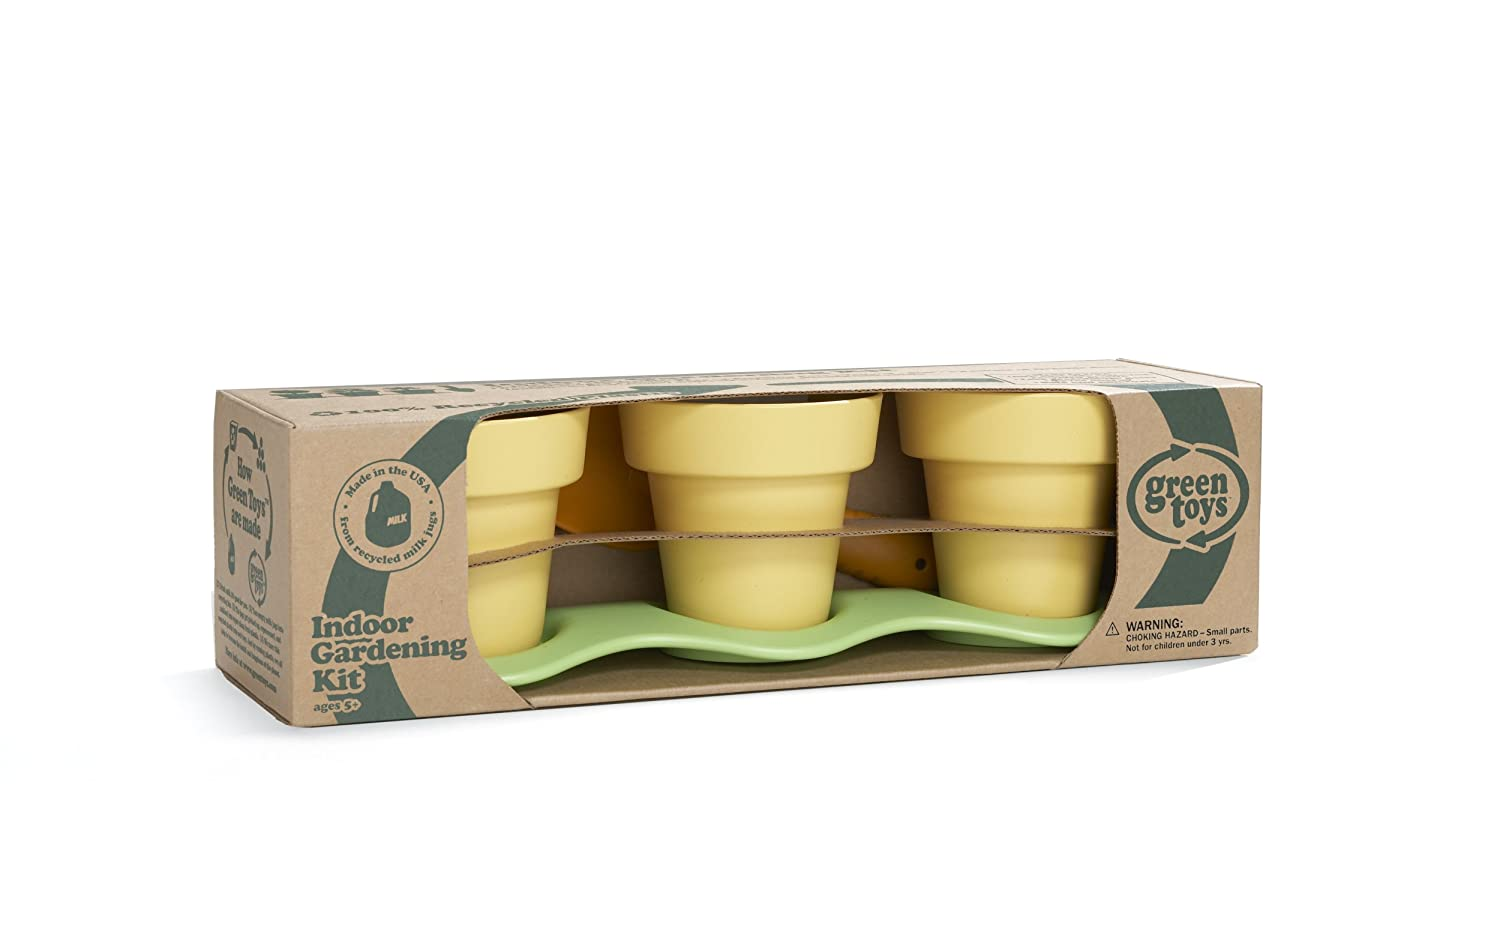 Green toys indoor gardening kit new free shipping ebay for Indoor gardening kit